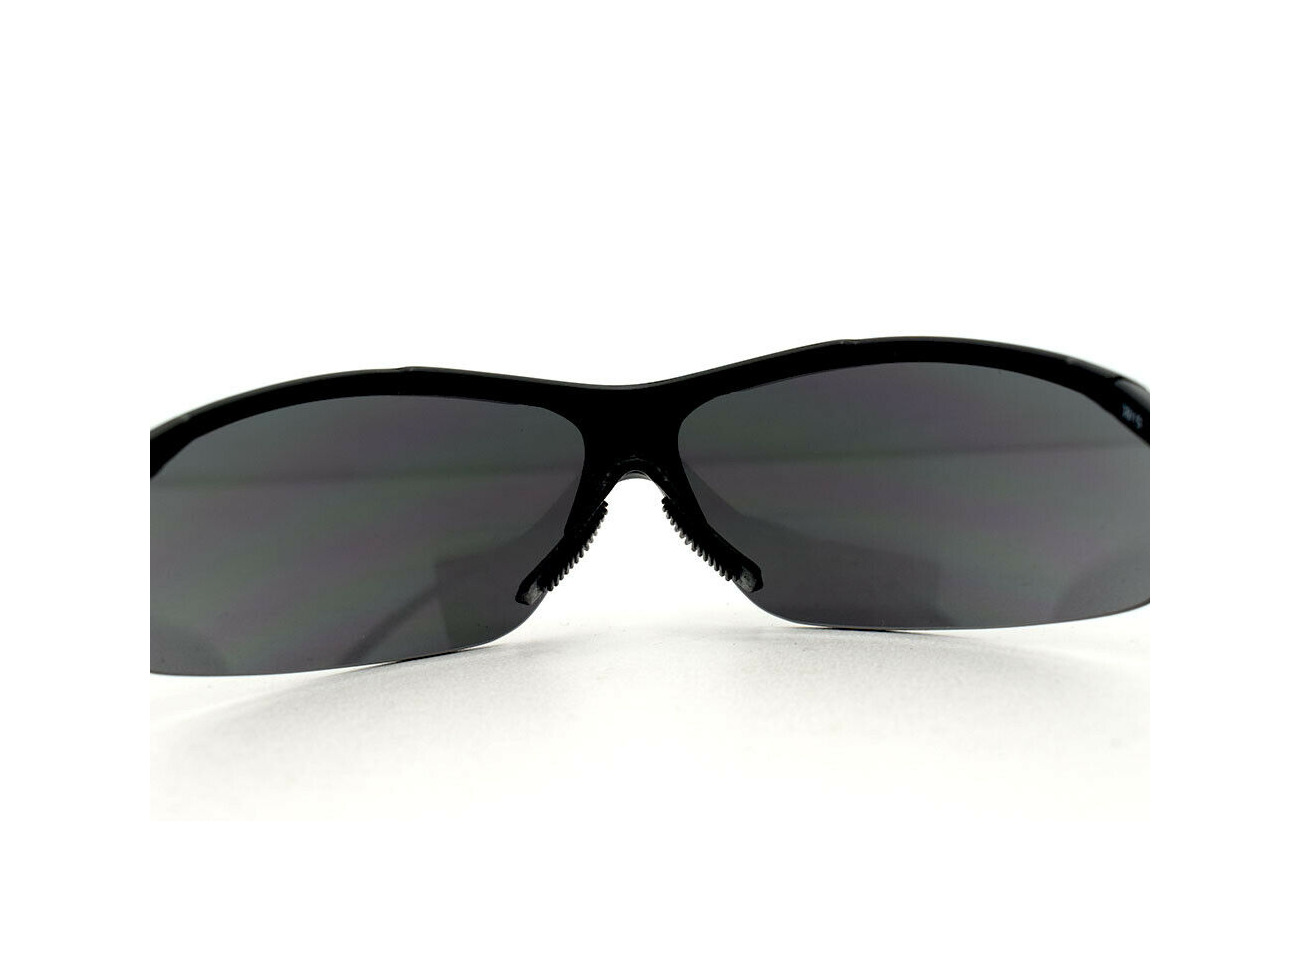 Rent Orao Oxylane Adult Sport Sunglasses Black Frame Black Lenses In London Rent For 0 00 Day